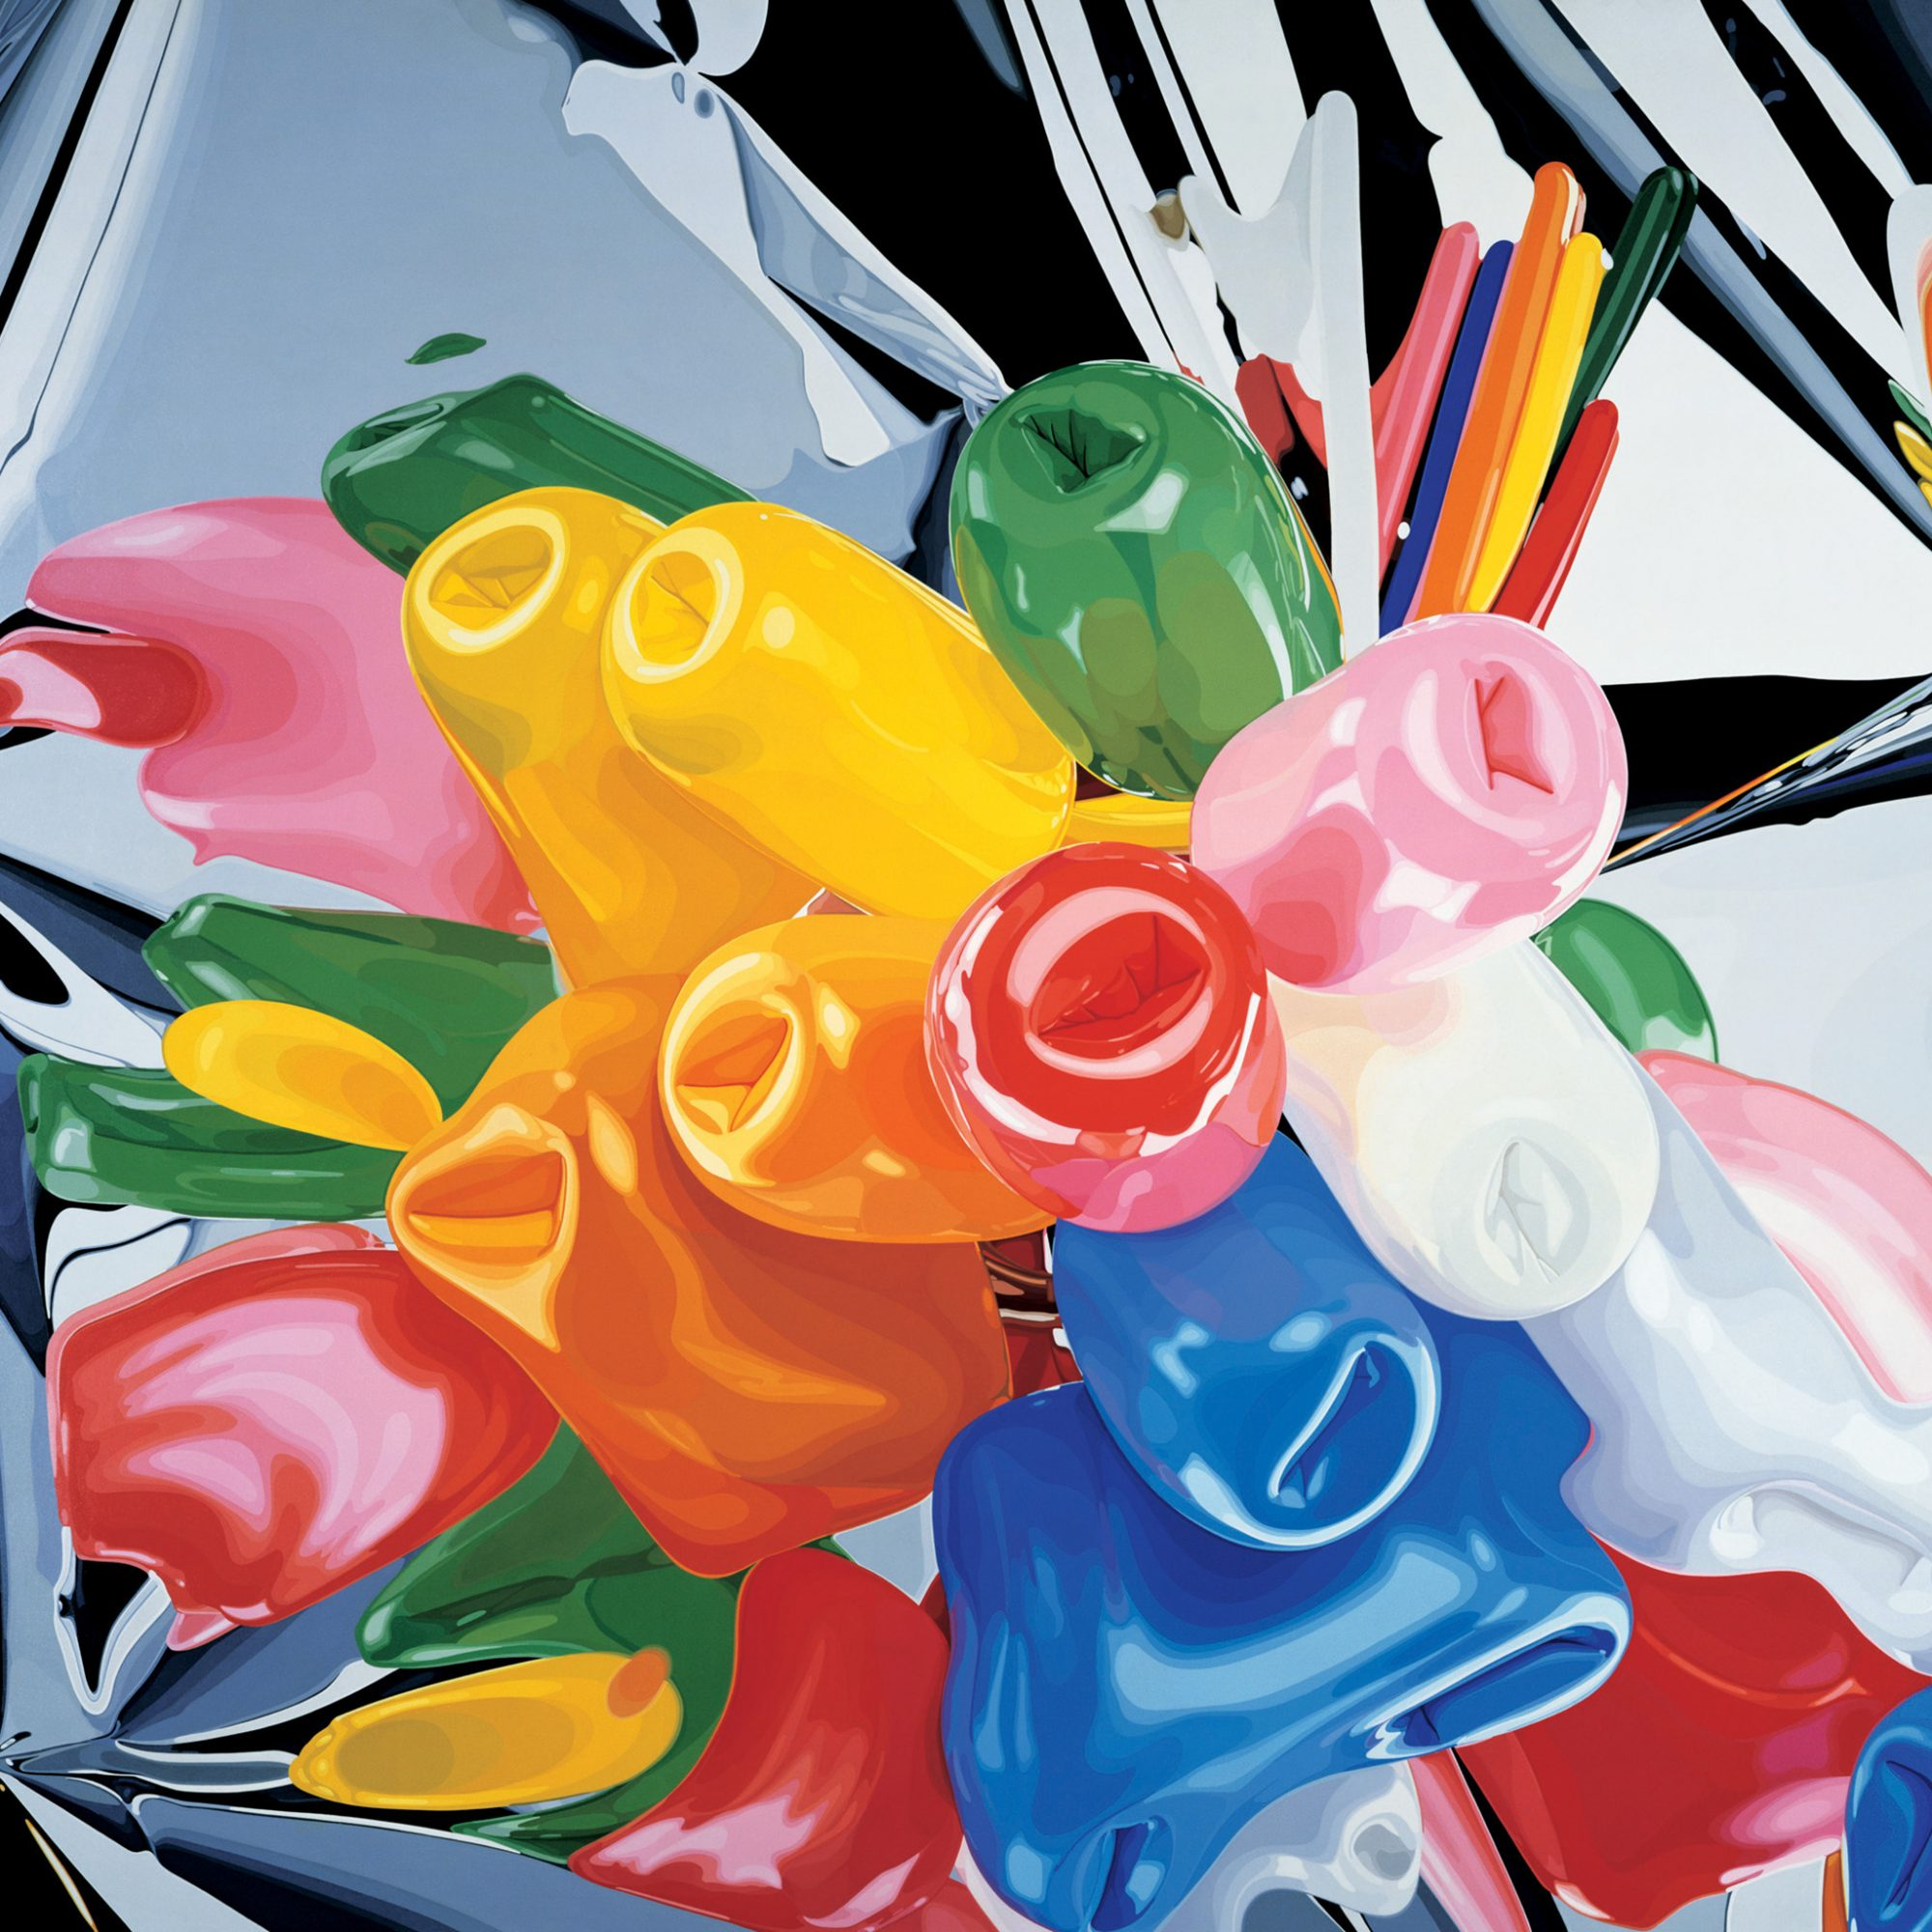 5 Works of Art to Know from the Whitney's New Jeff Koons Retrospective